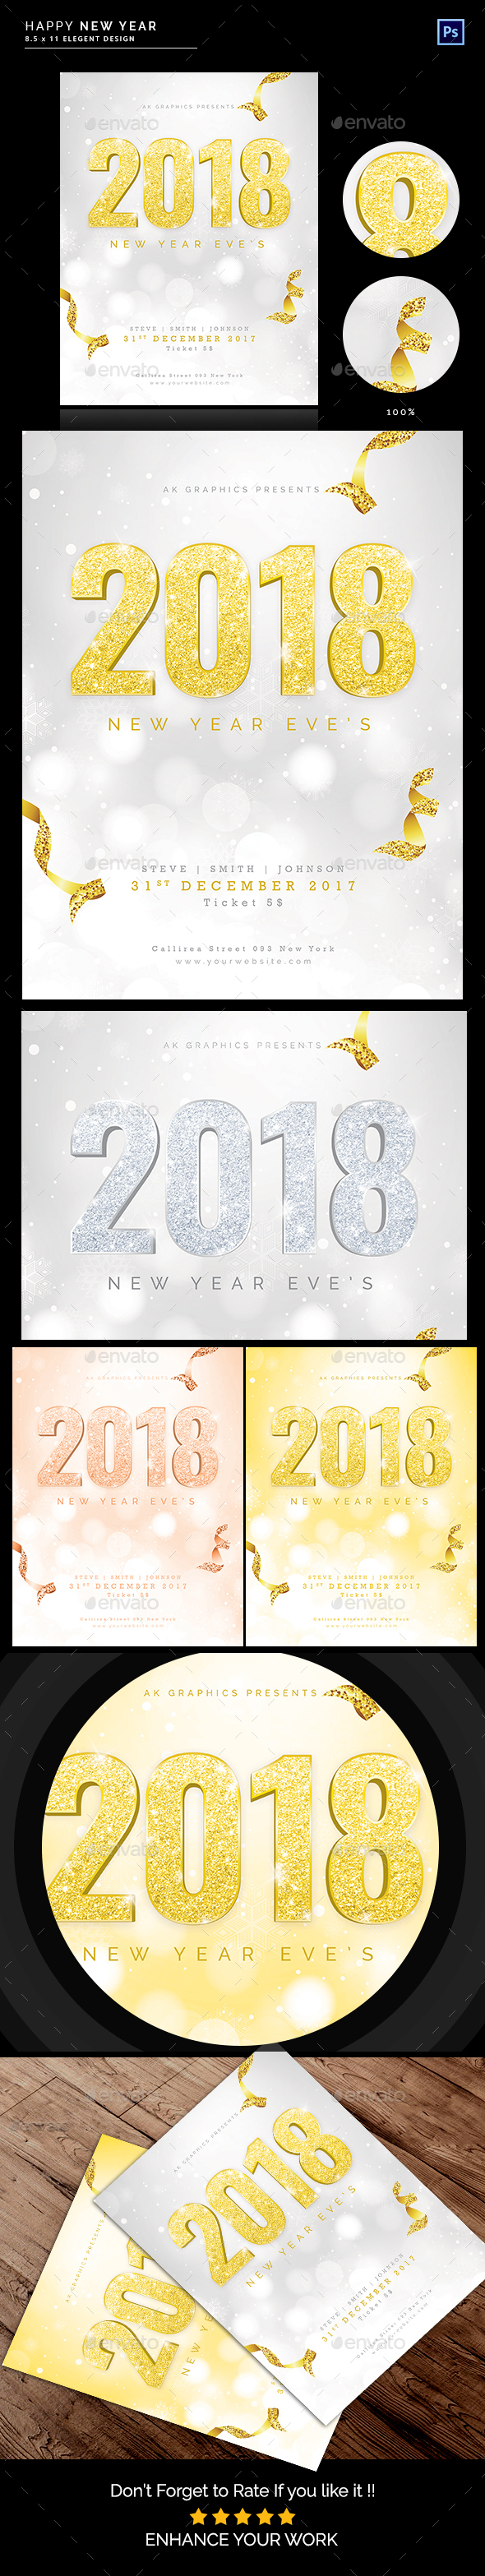 GraphicRiver Happy New Year Flyer 2018 Vol 2 20967408